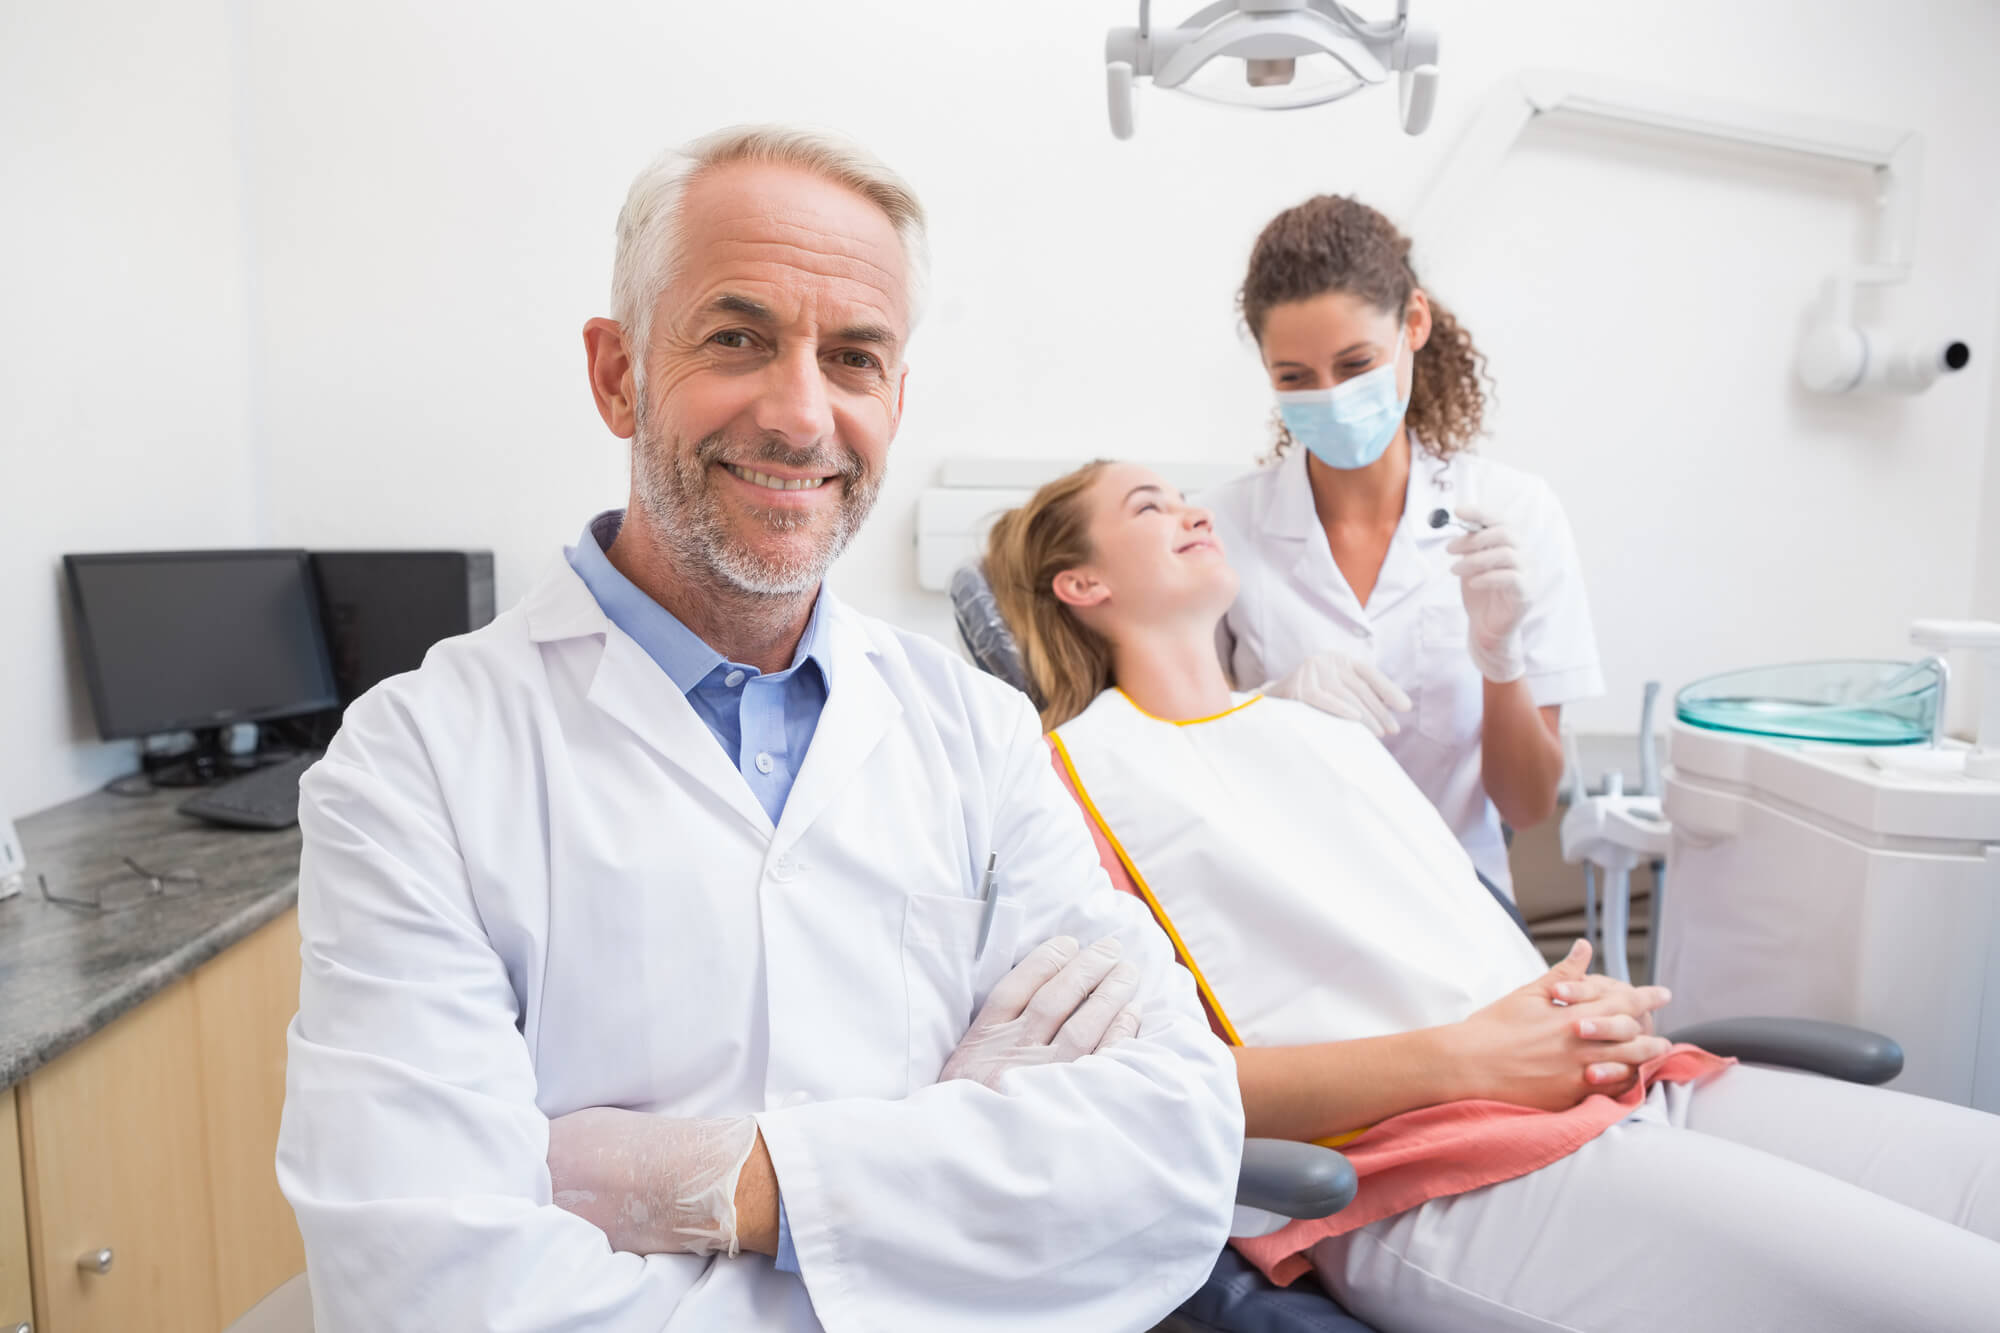 Dentist with assistant and patient after extraction of Wisdom teeth in Plantation